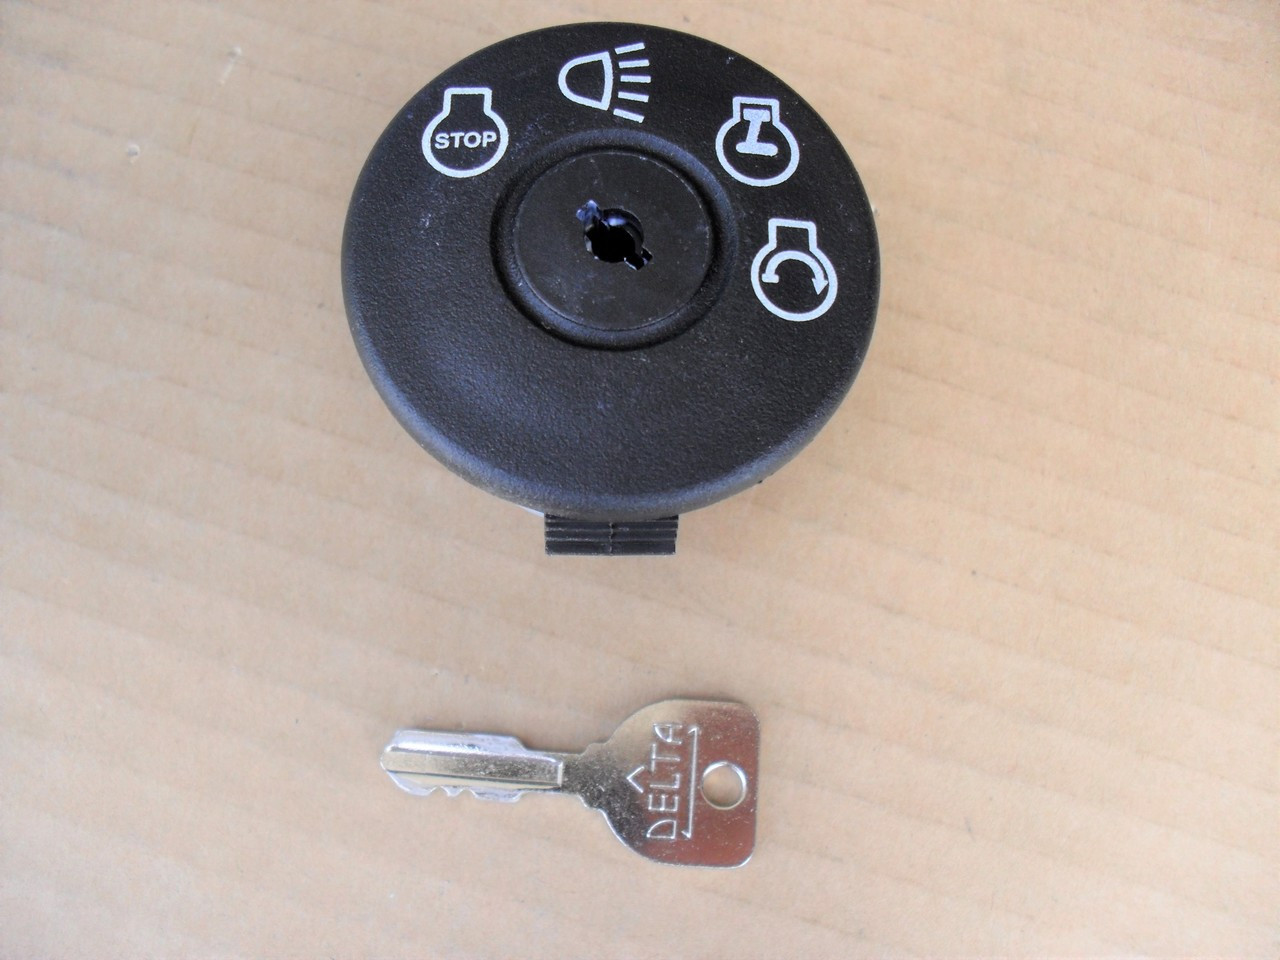 33-105 Ignition Switch WITH KEY replaces Cub Cadet and MTD 925-04227A